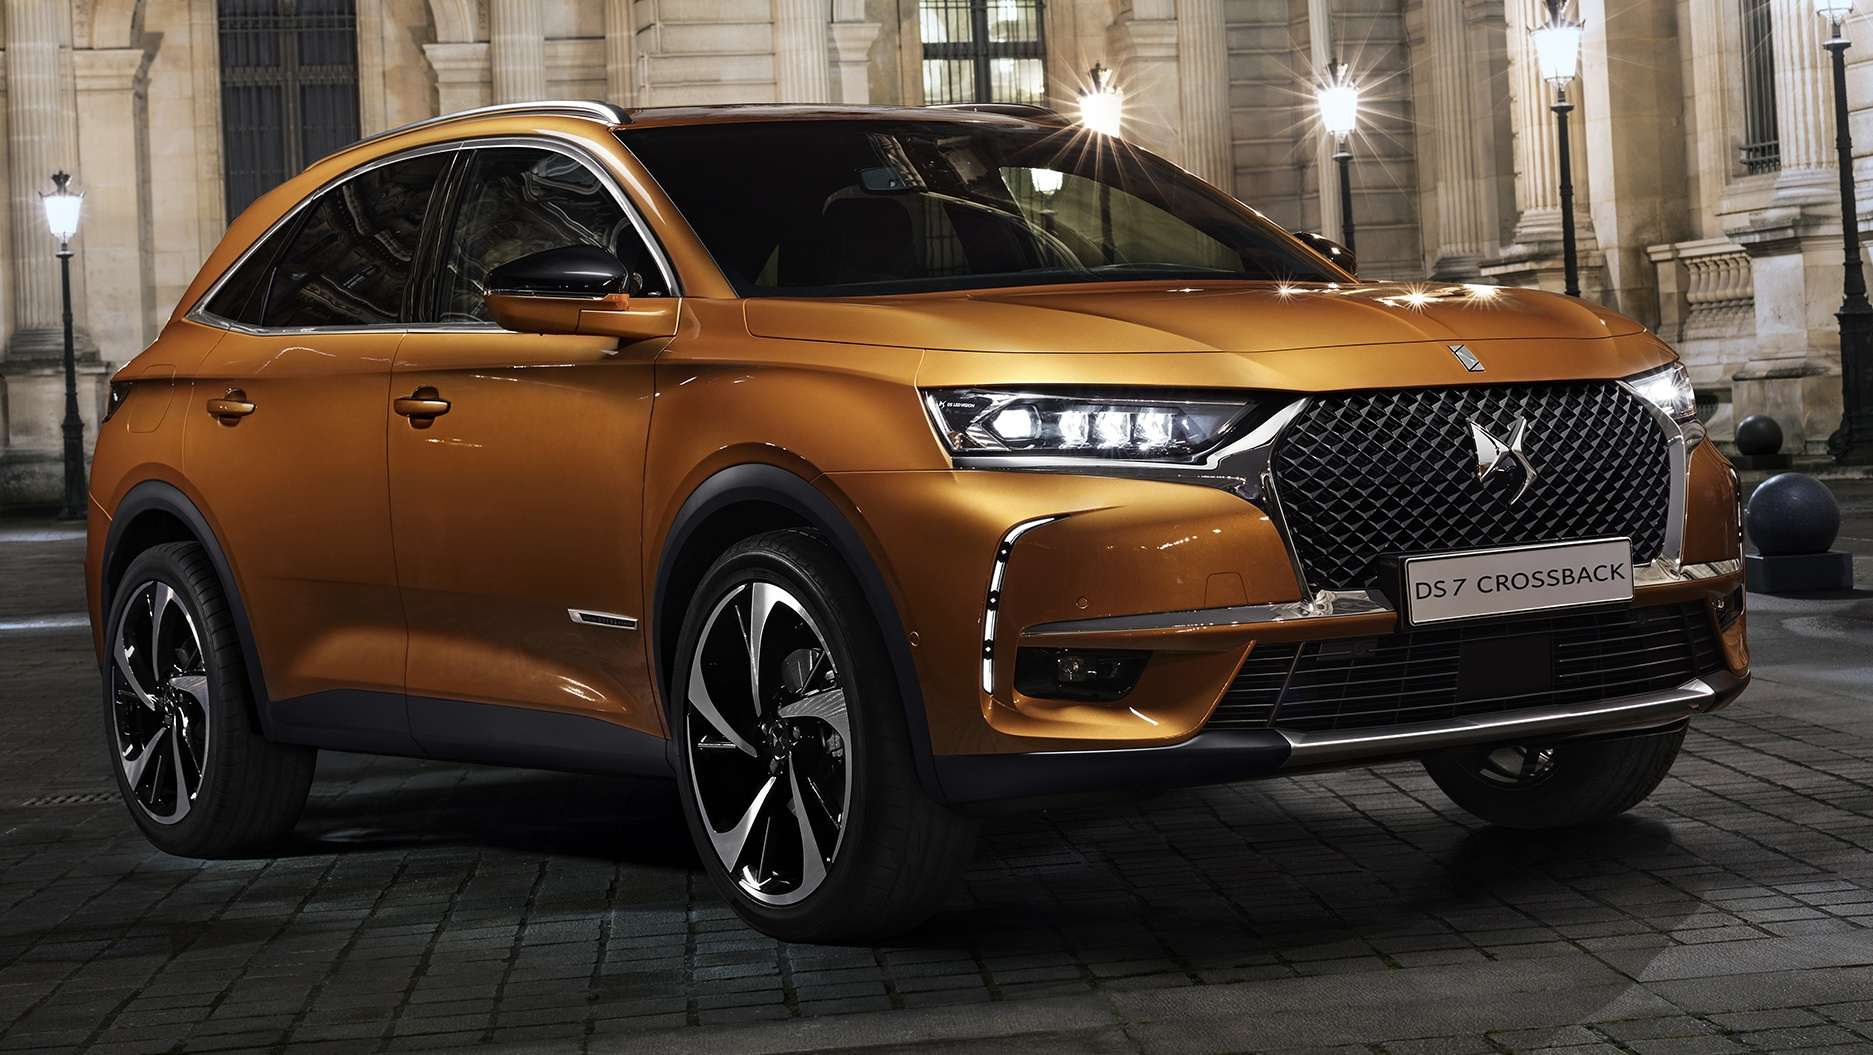 DS7 Crossback unveiled – X3 rival bound for Geneva Image ...